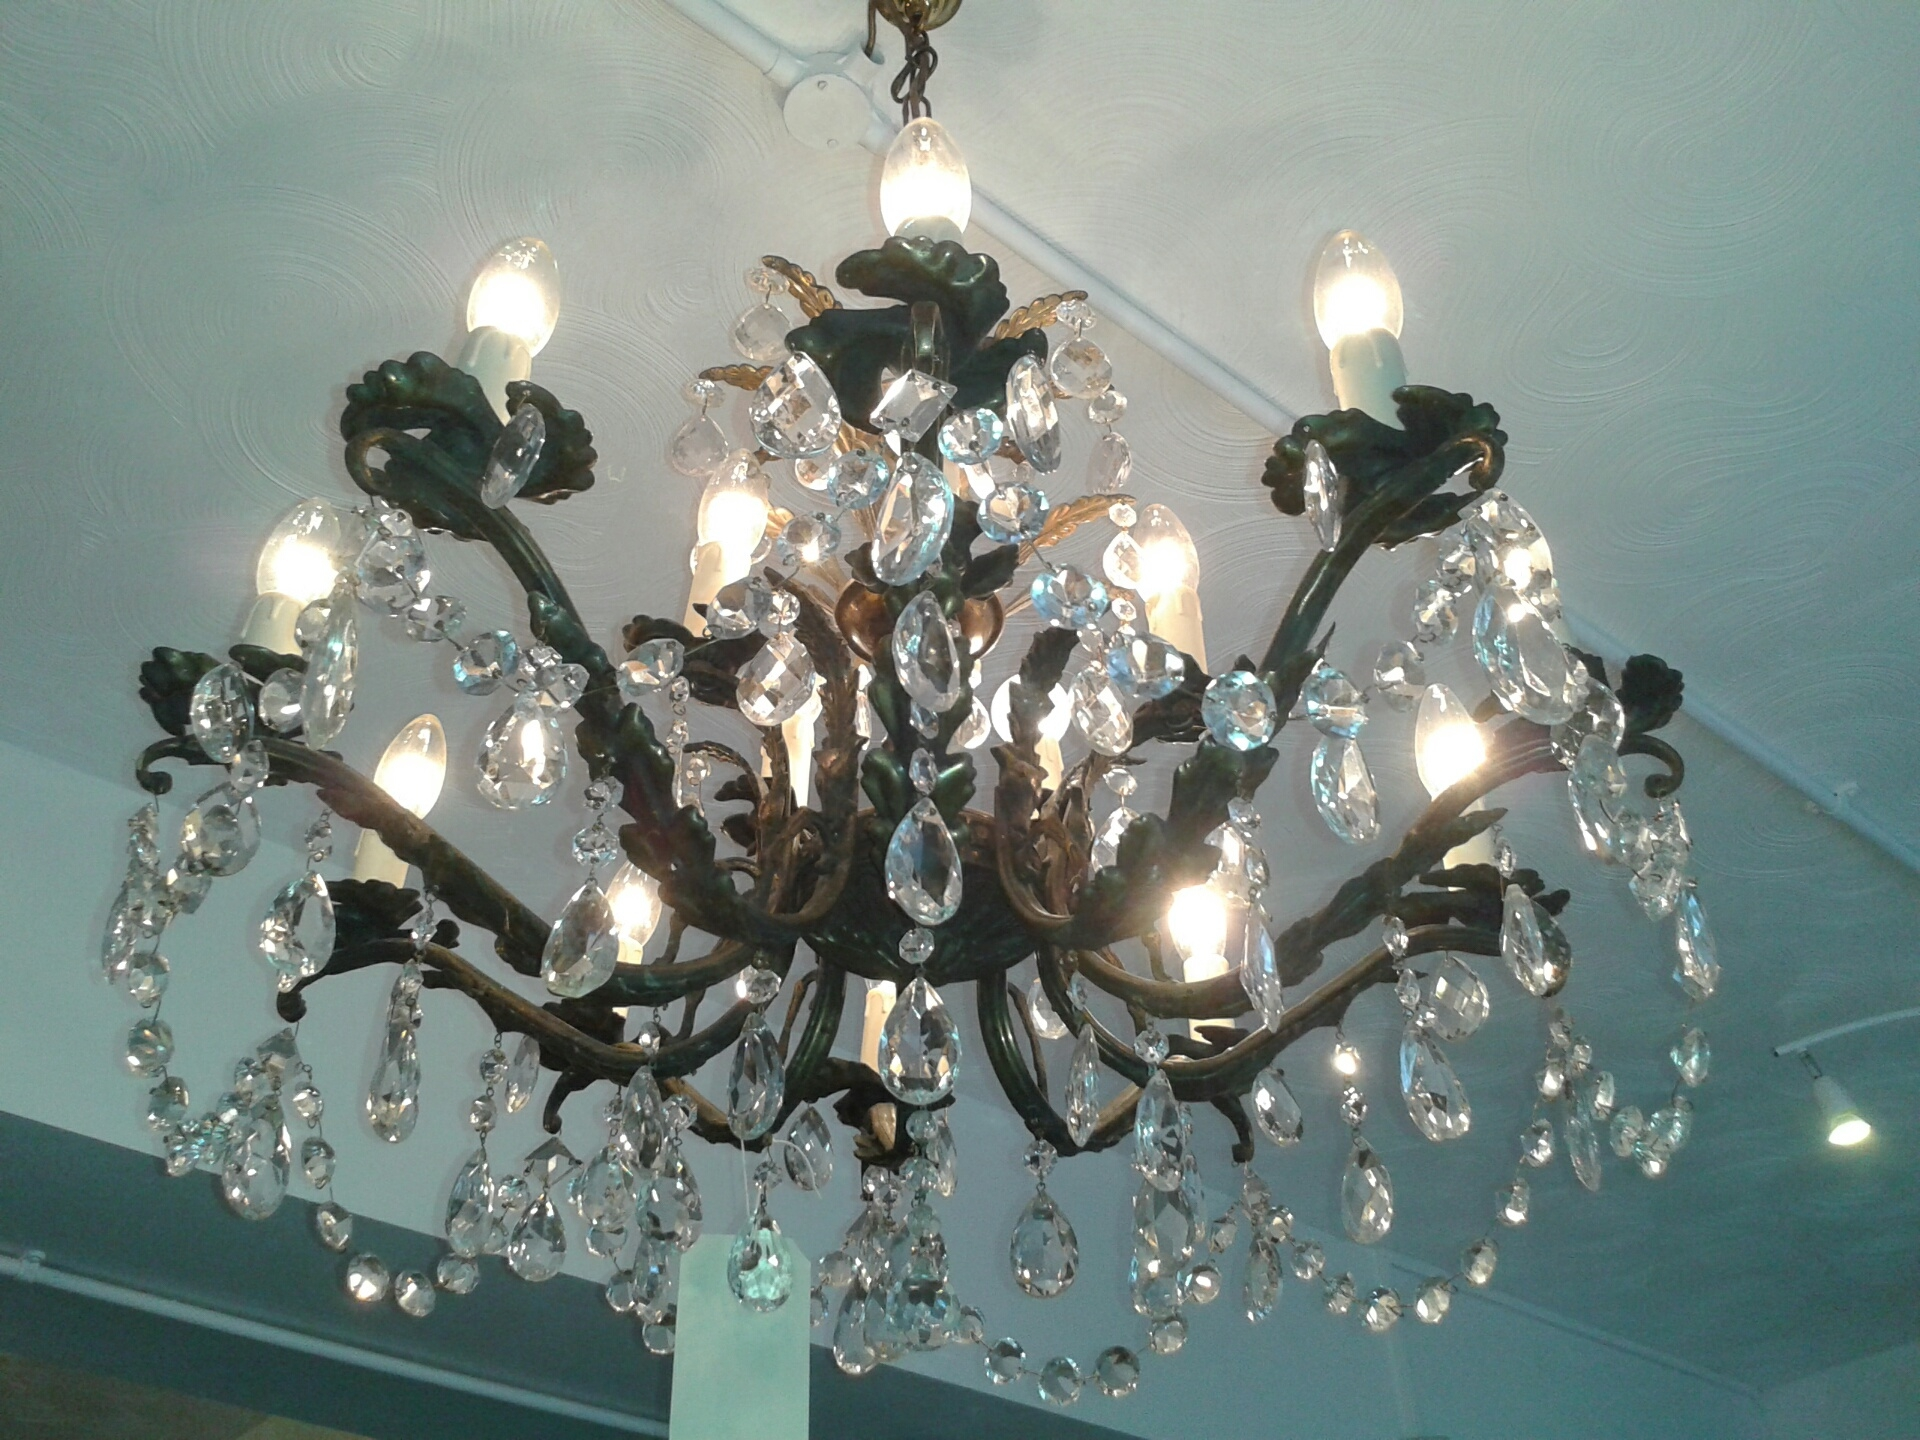 Sold Mid 20th Century 15 Light Chandelier Th121 In Edwardian Chandeliers (Image 15 of 15)